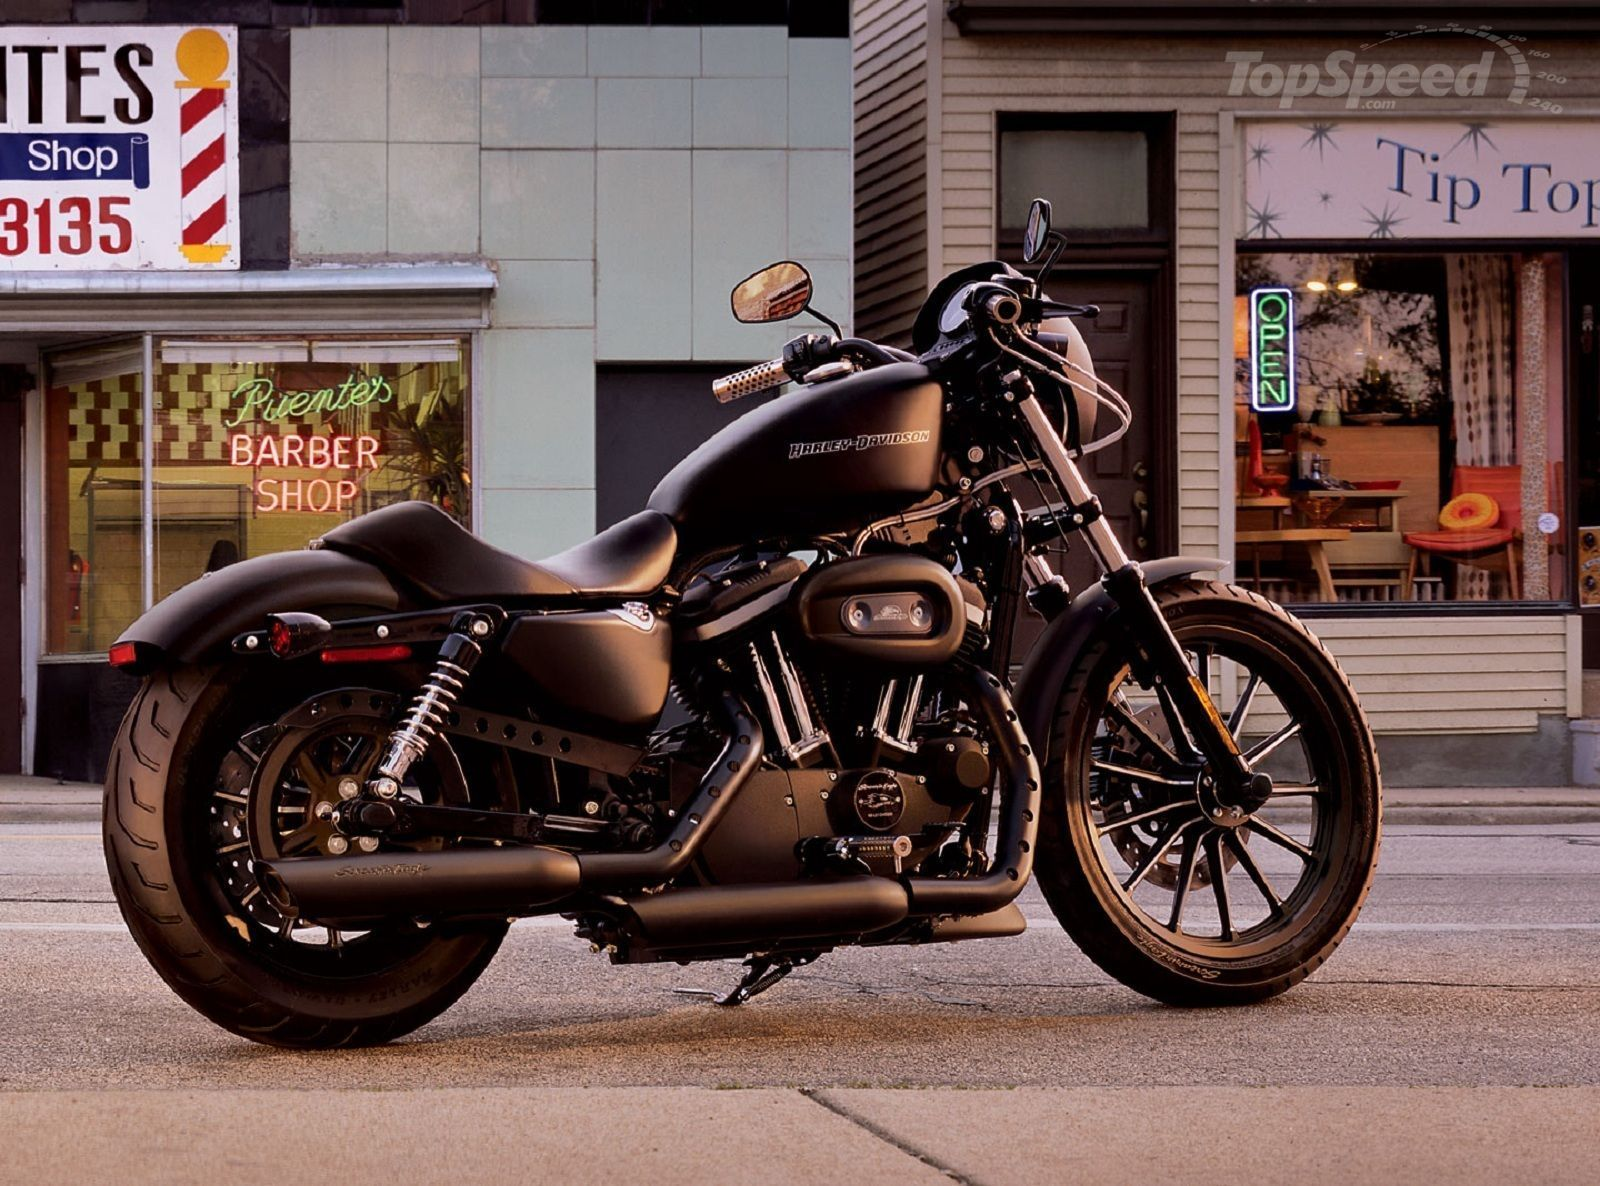 The 2011 harley davidson sportster iron 883 is an amazing way to get started with a custom motor bike from the authentic harley